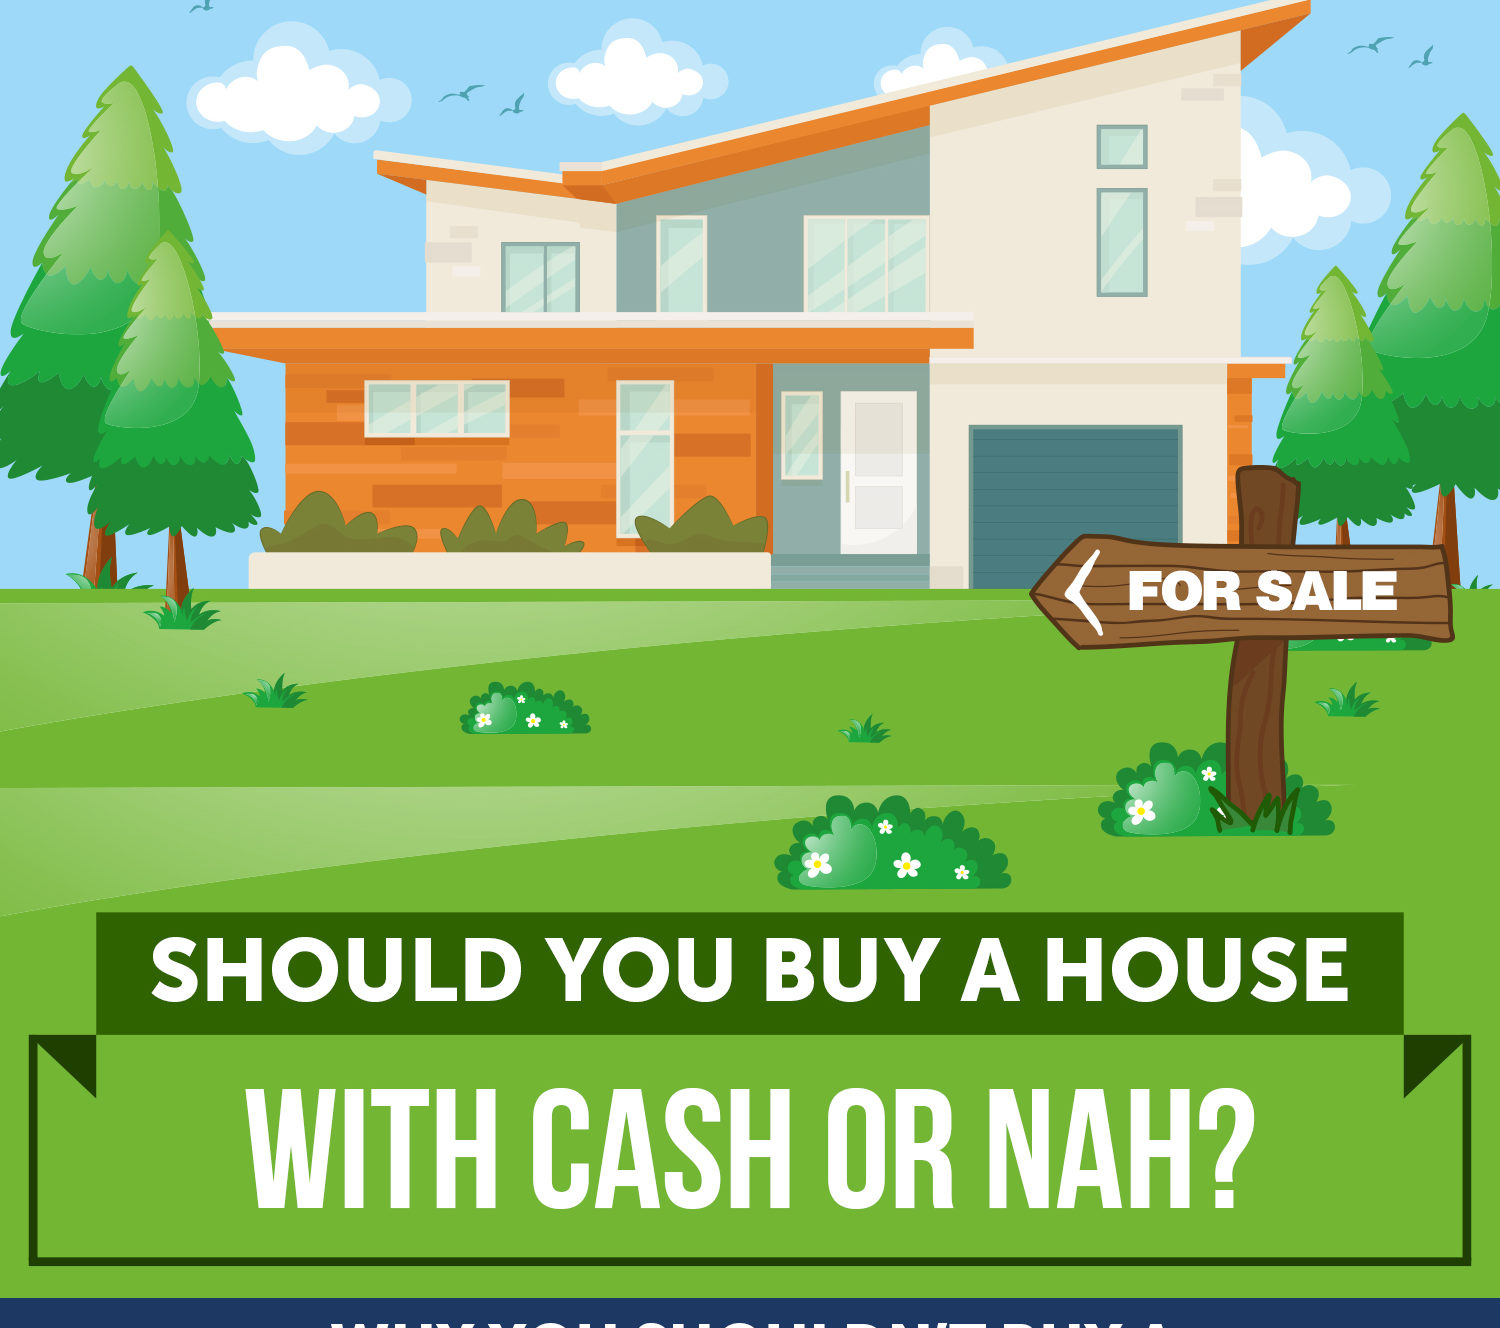 Buying a House with Cash: Good Idea or Nah? (Infographic Below)